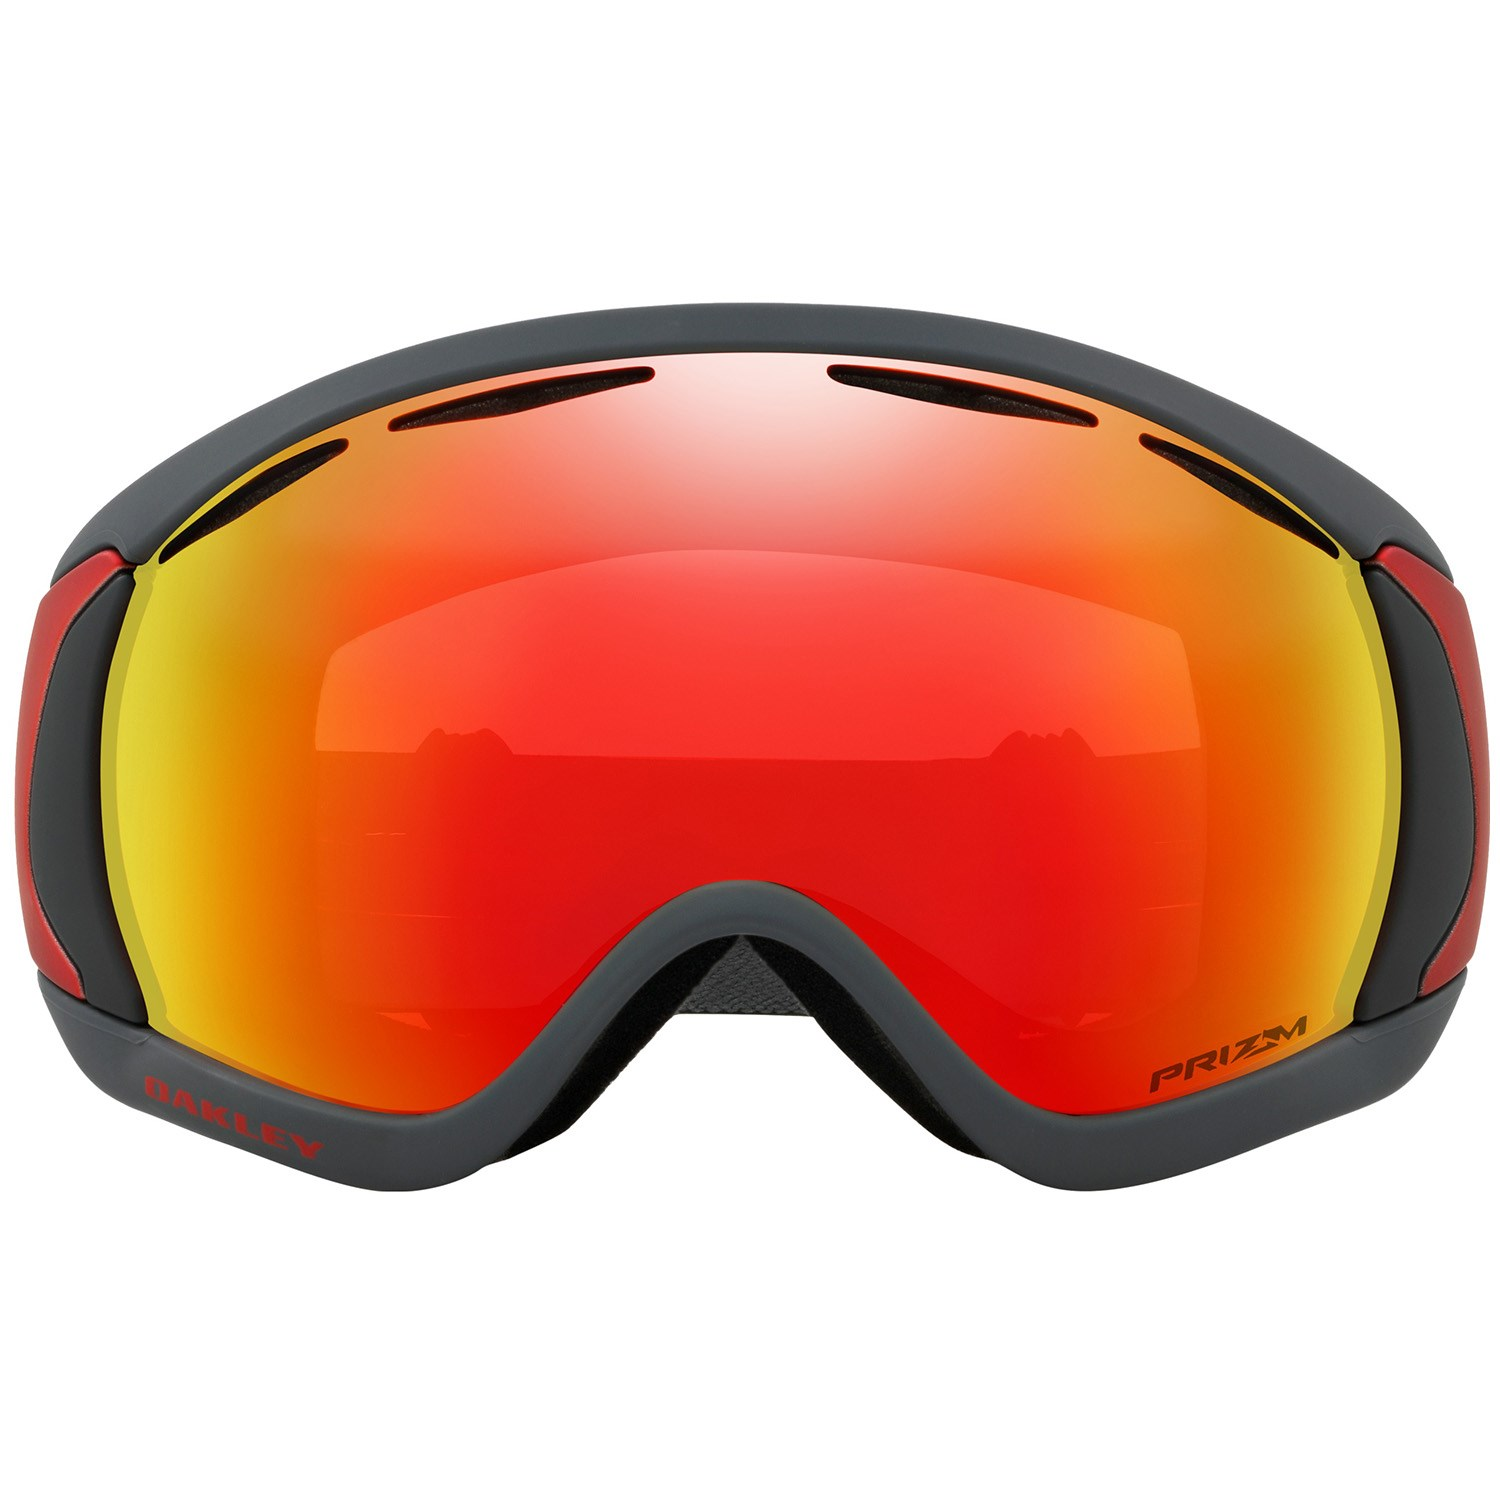 4c73d6bfb633 Oakley Canopy Goggles